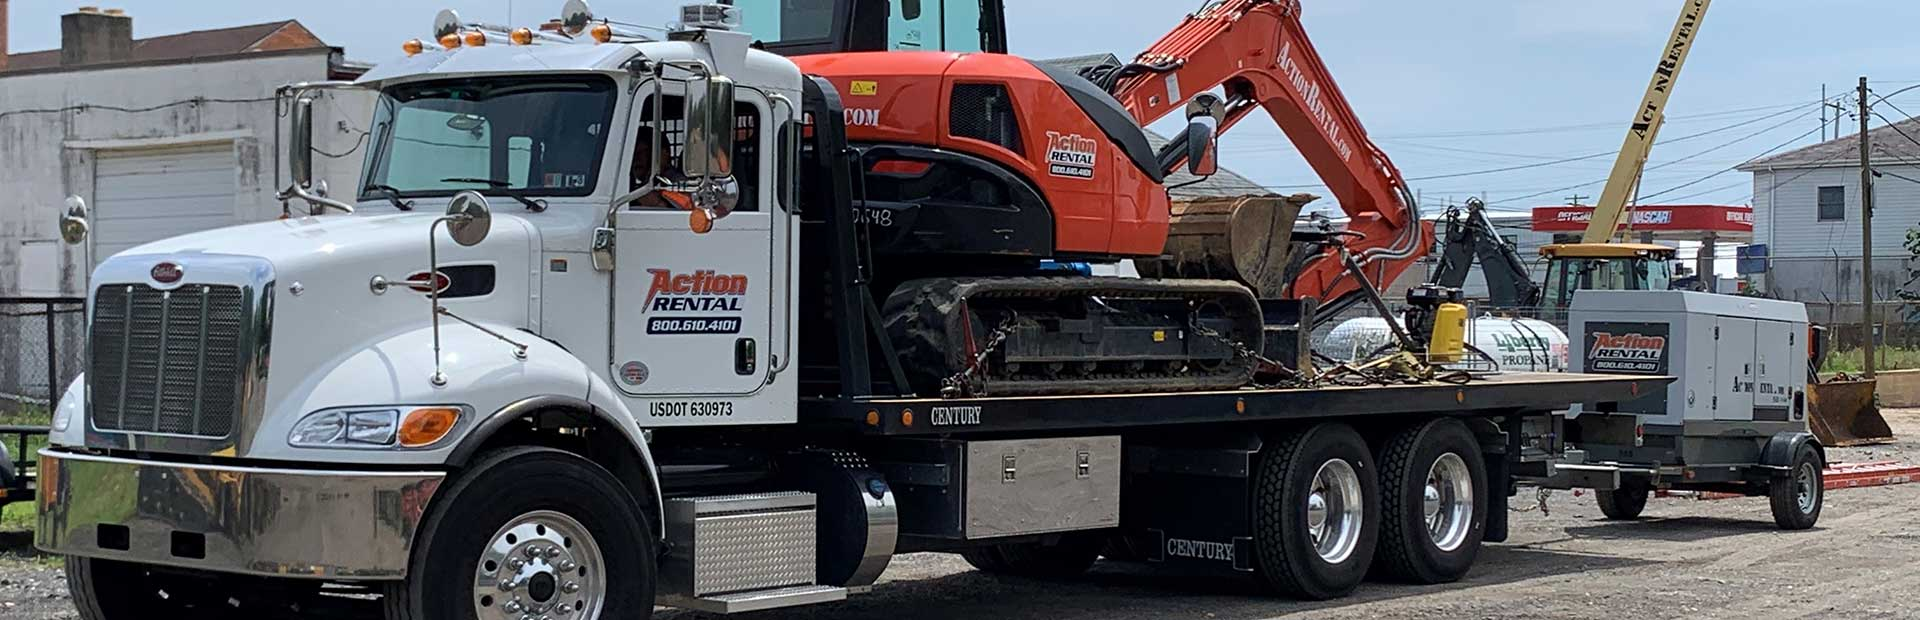 Construction Equipment Rentals in the Lehigh Valley